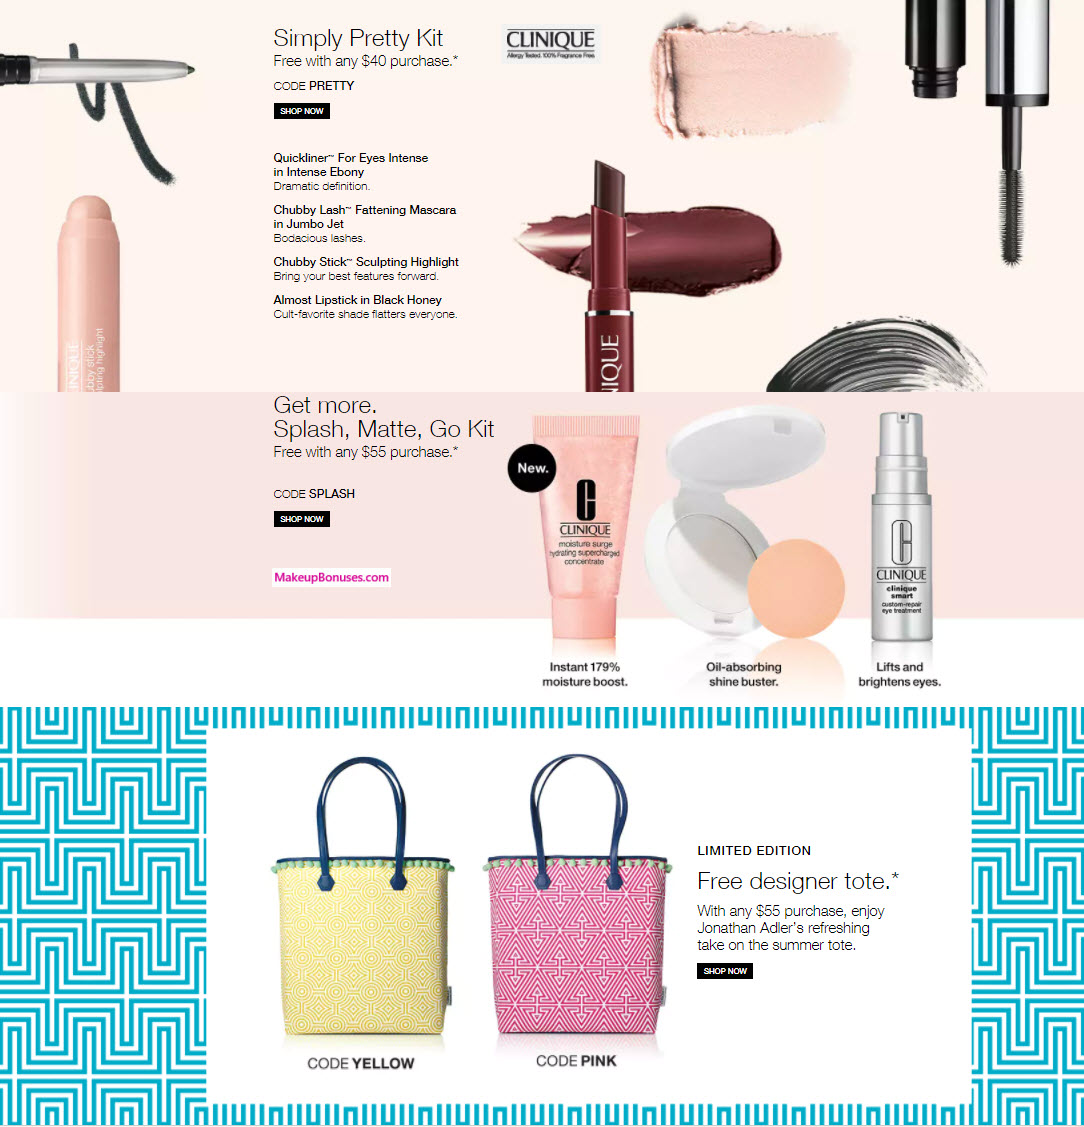 Receive a free 7-piece bonus gift with your $55 Clinique purchase